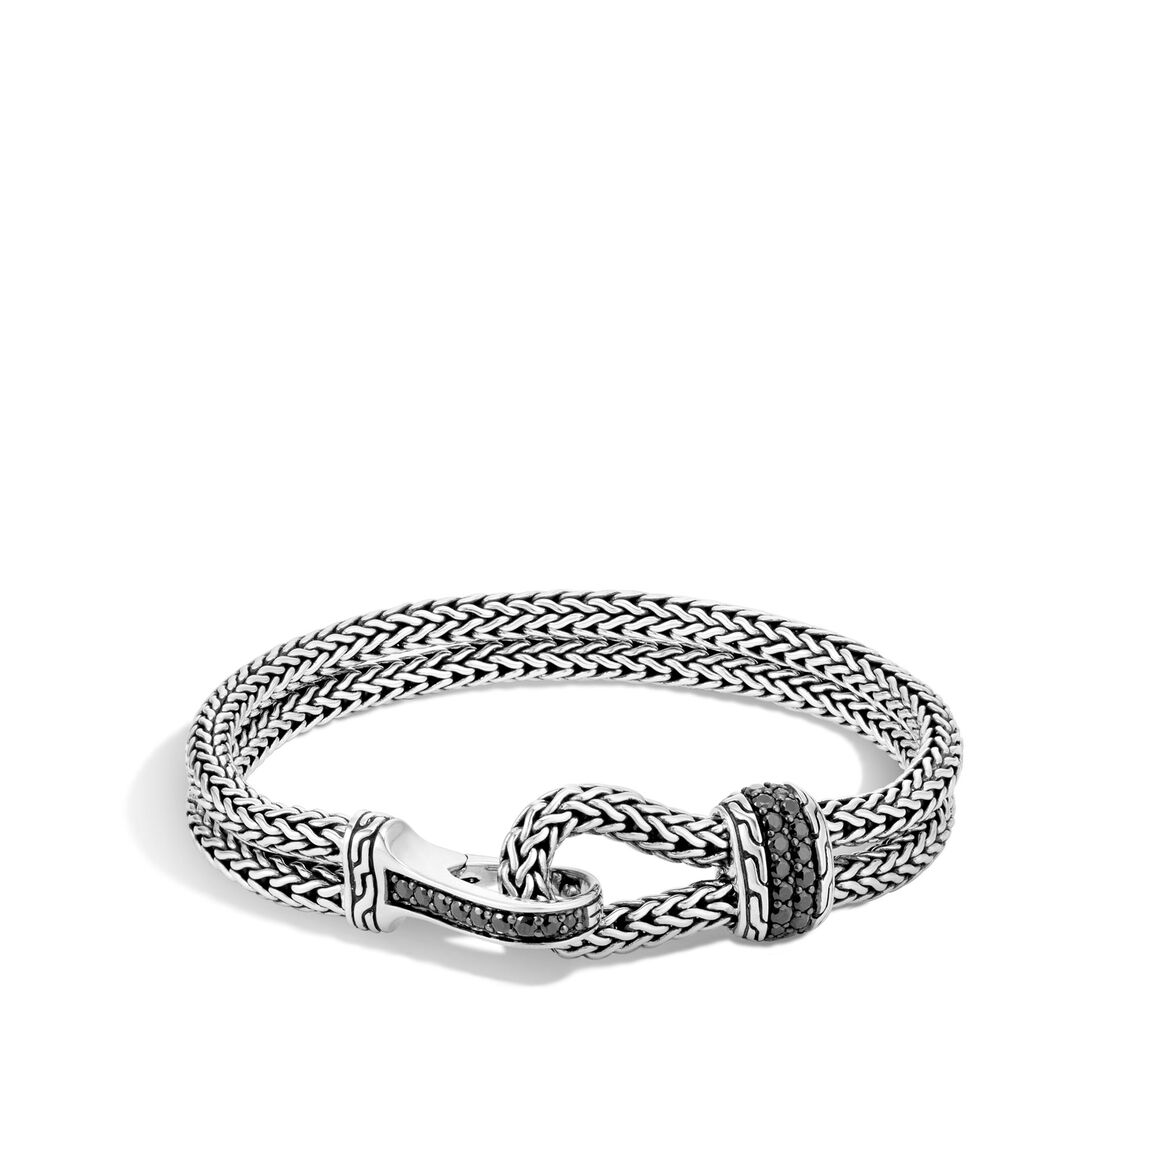 Classic Chain 8.5MM Bracelet in Silver with Gemstone